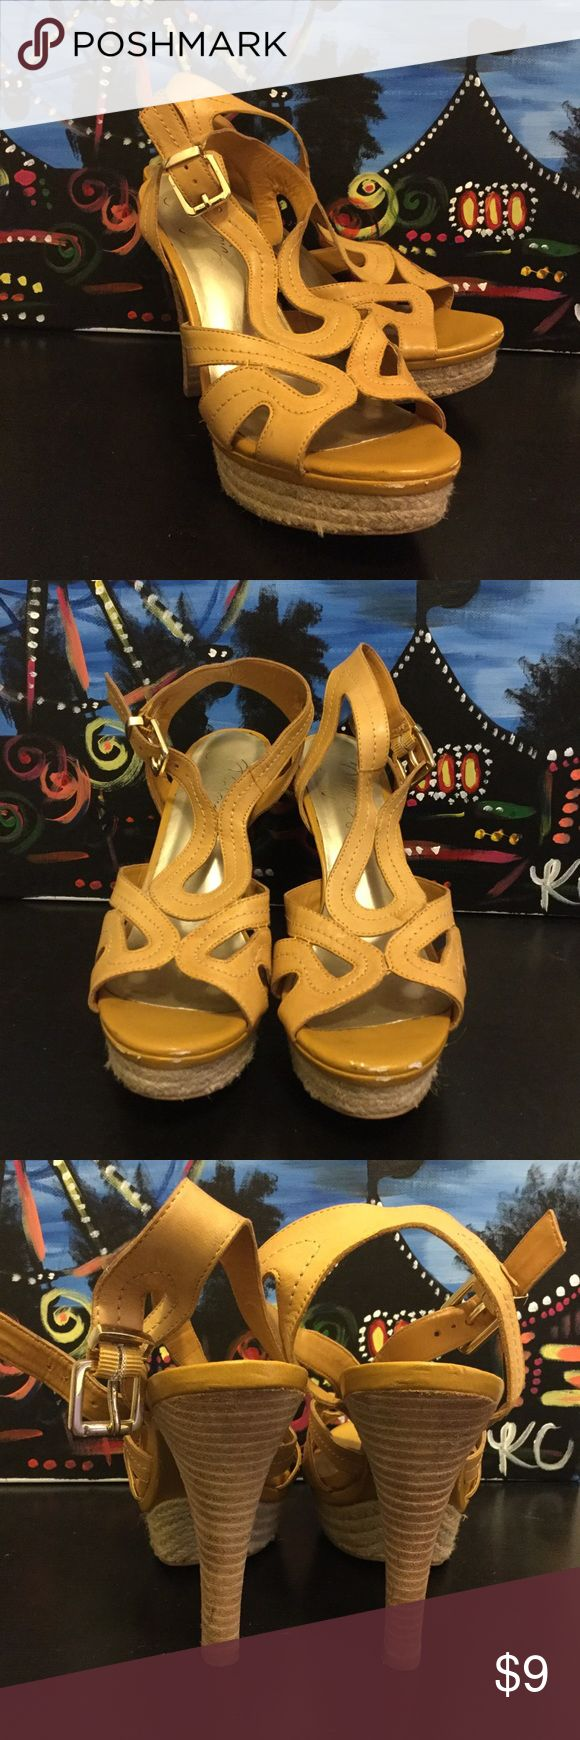 👠 Fergie Yellow Mustard Shoes 👠 Size 8.5. Pre loved shoes. 5 inches heels with 1.25 inch elevation in the front so it feels like 3.5 heels. Very comfortable. Front heels are made of jute rope as in espadrilles. Scruffiness under the bridge noted on the right shoe. Not noticeable during normal wear. PRICED TO SELL. Price firm. Fergie Shoes Heels